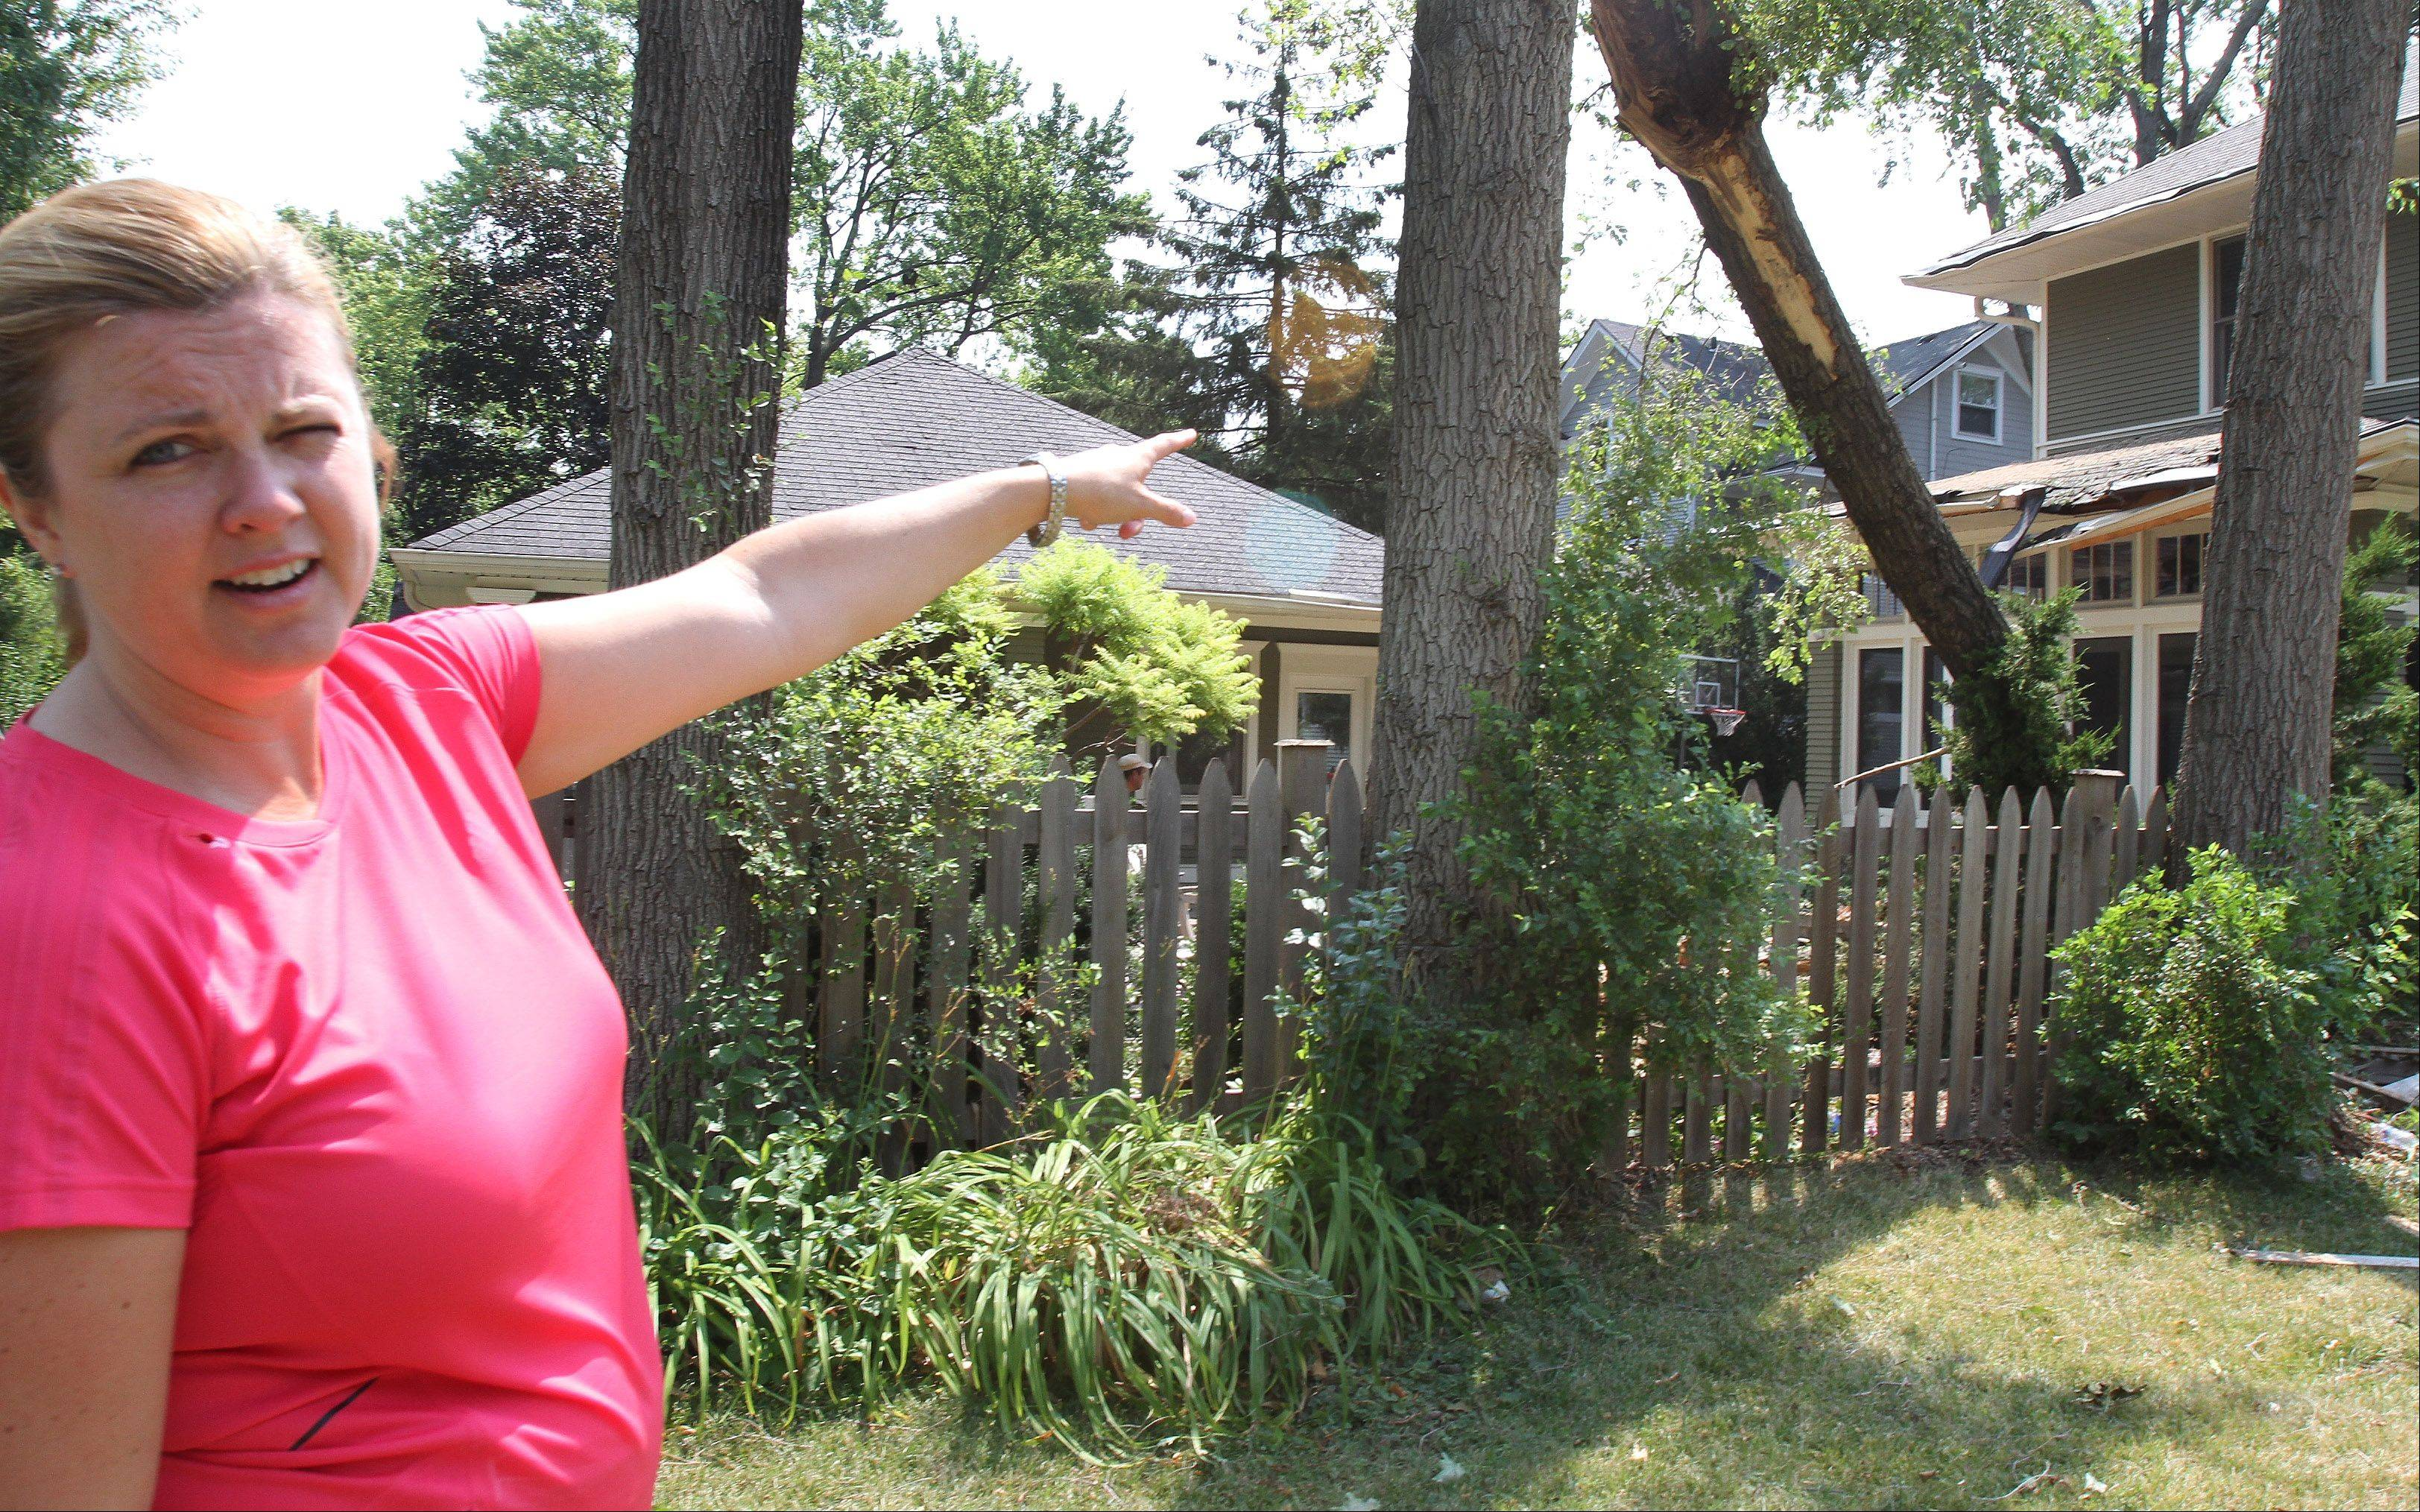 Sarah Bowers points to the damage done on her house in the 200 block of West Jefferson in Wheaton after Sunday's storm. She was not home at the time, but her husband and son were. They were able to get it cleaned up quickly on Monday morning.